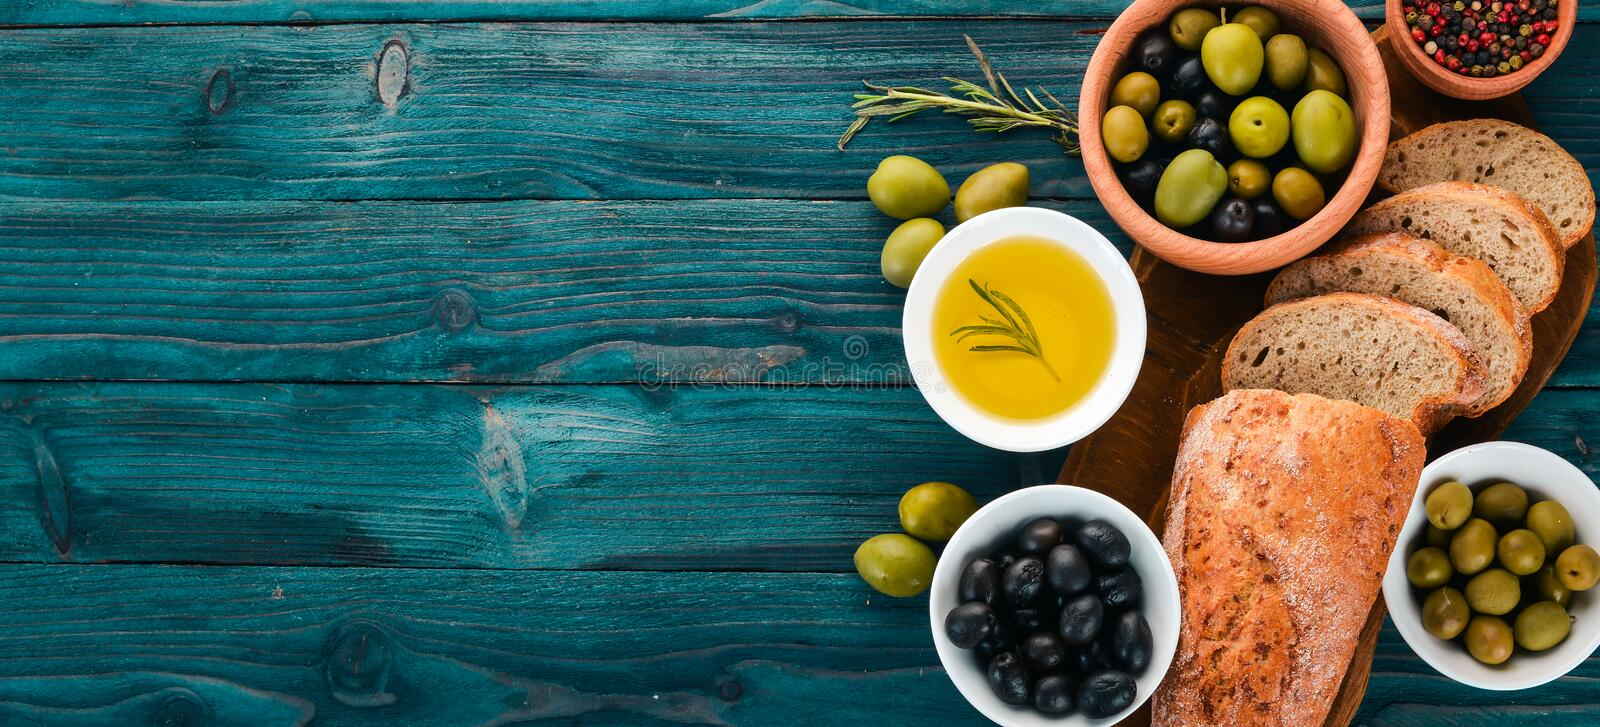 A set of green olives and black olives, and snacks. On a blue wooden table. Free space for text royalty free stock image